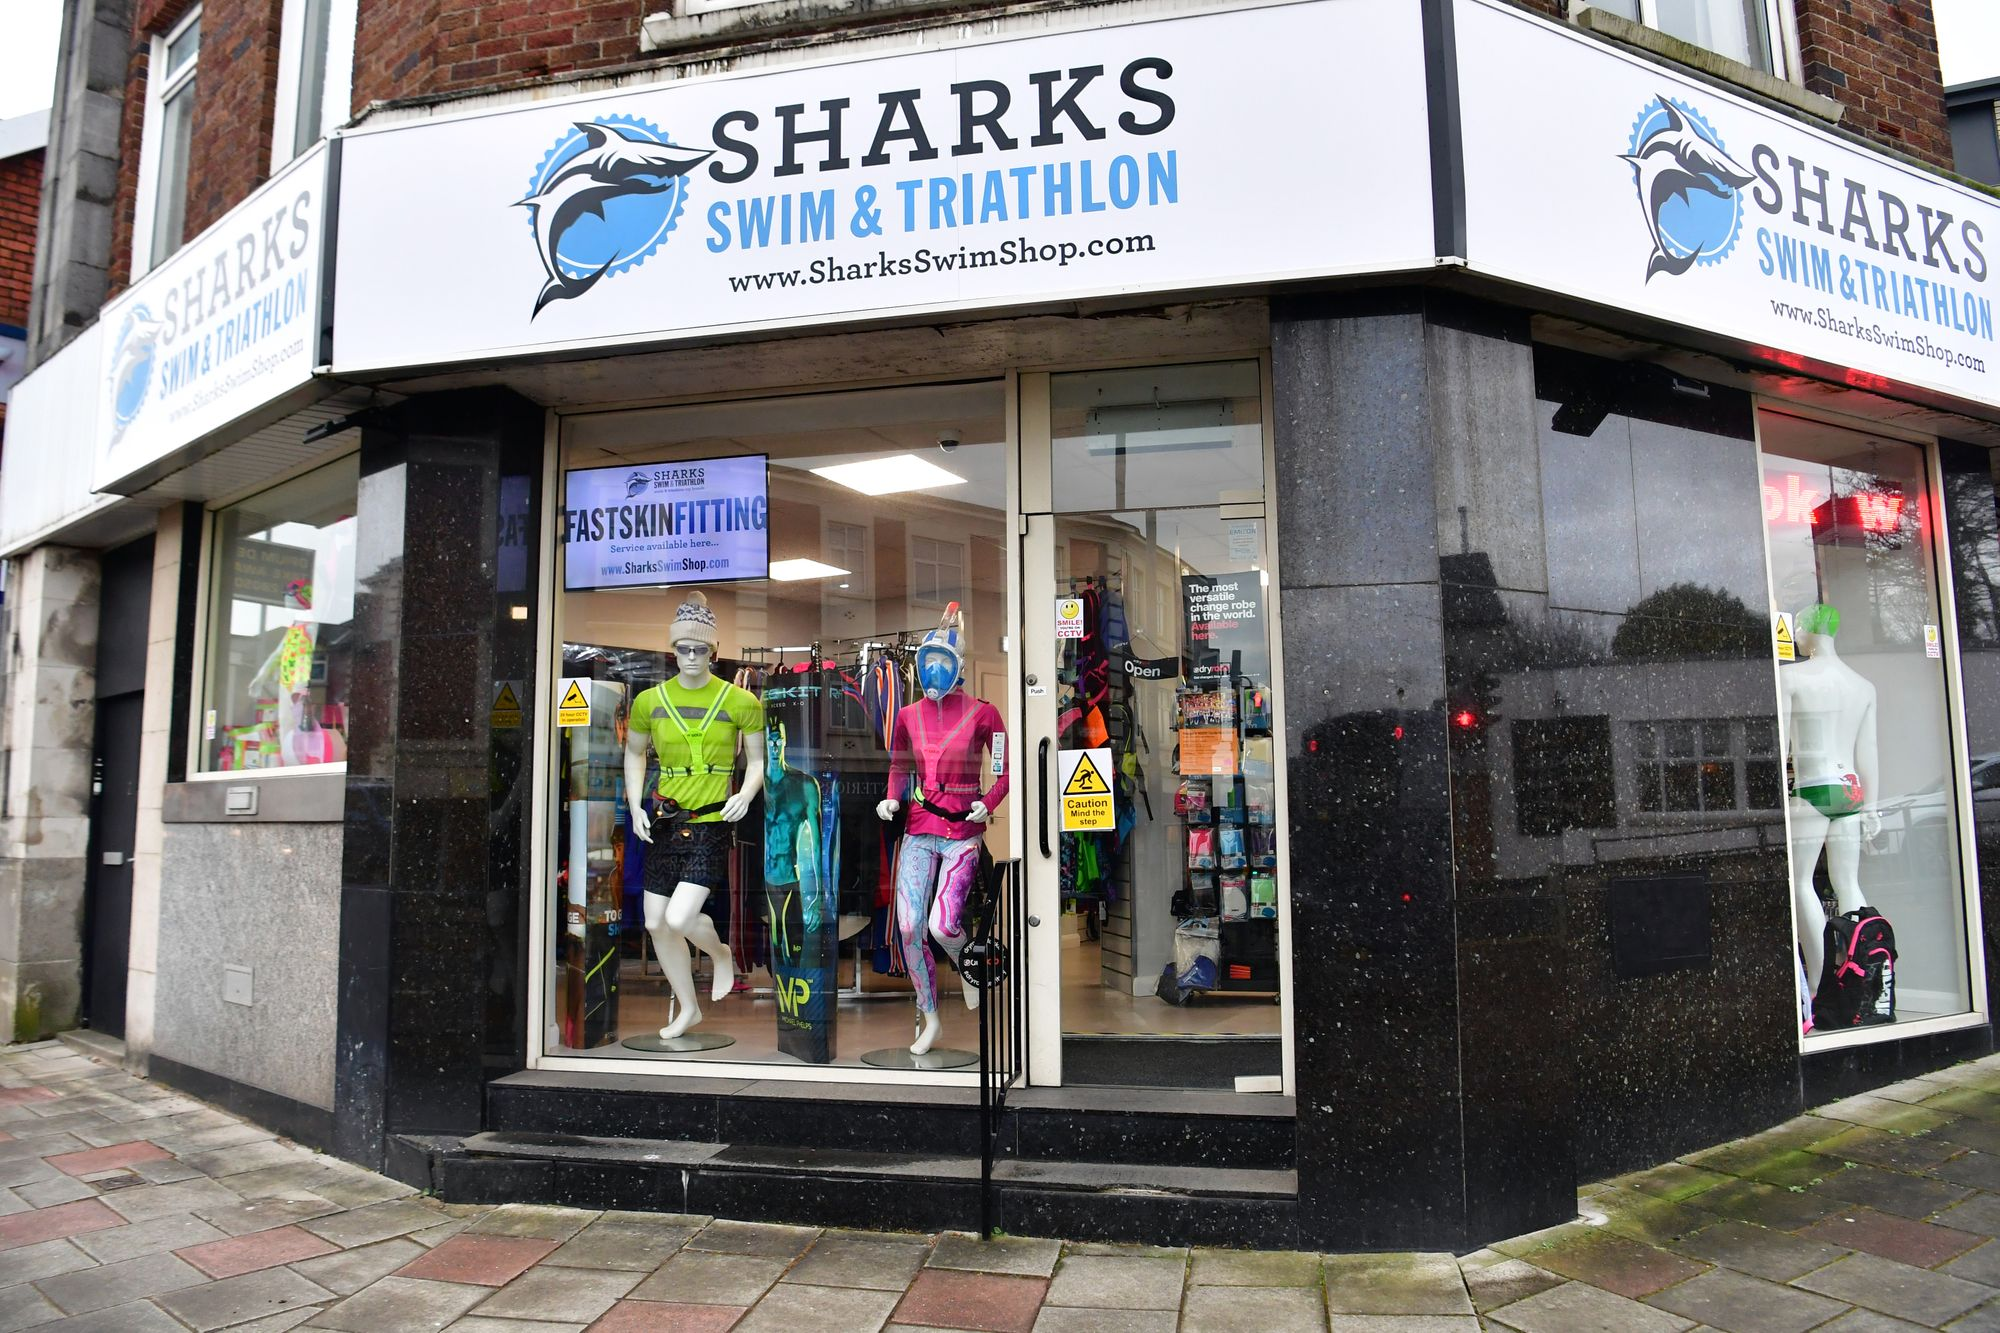 About Sharks Swim Shop - Swim & Triathlon Shop, Swansea